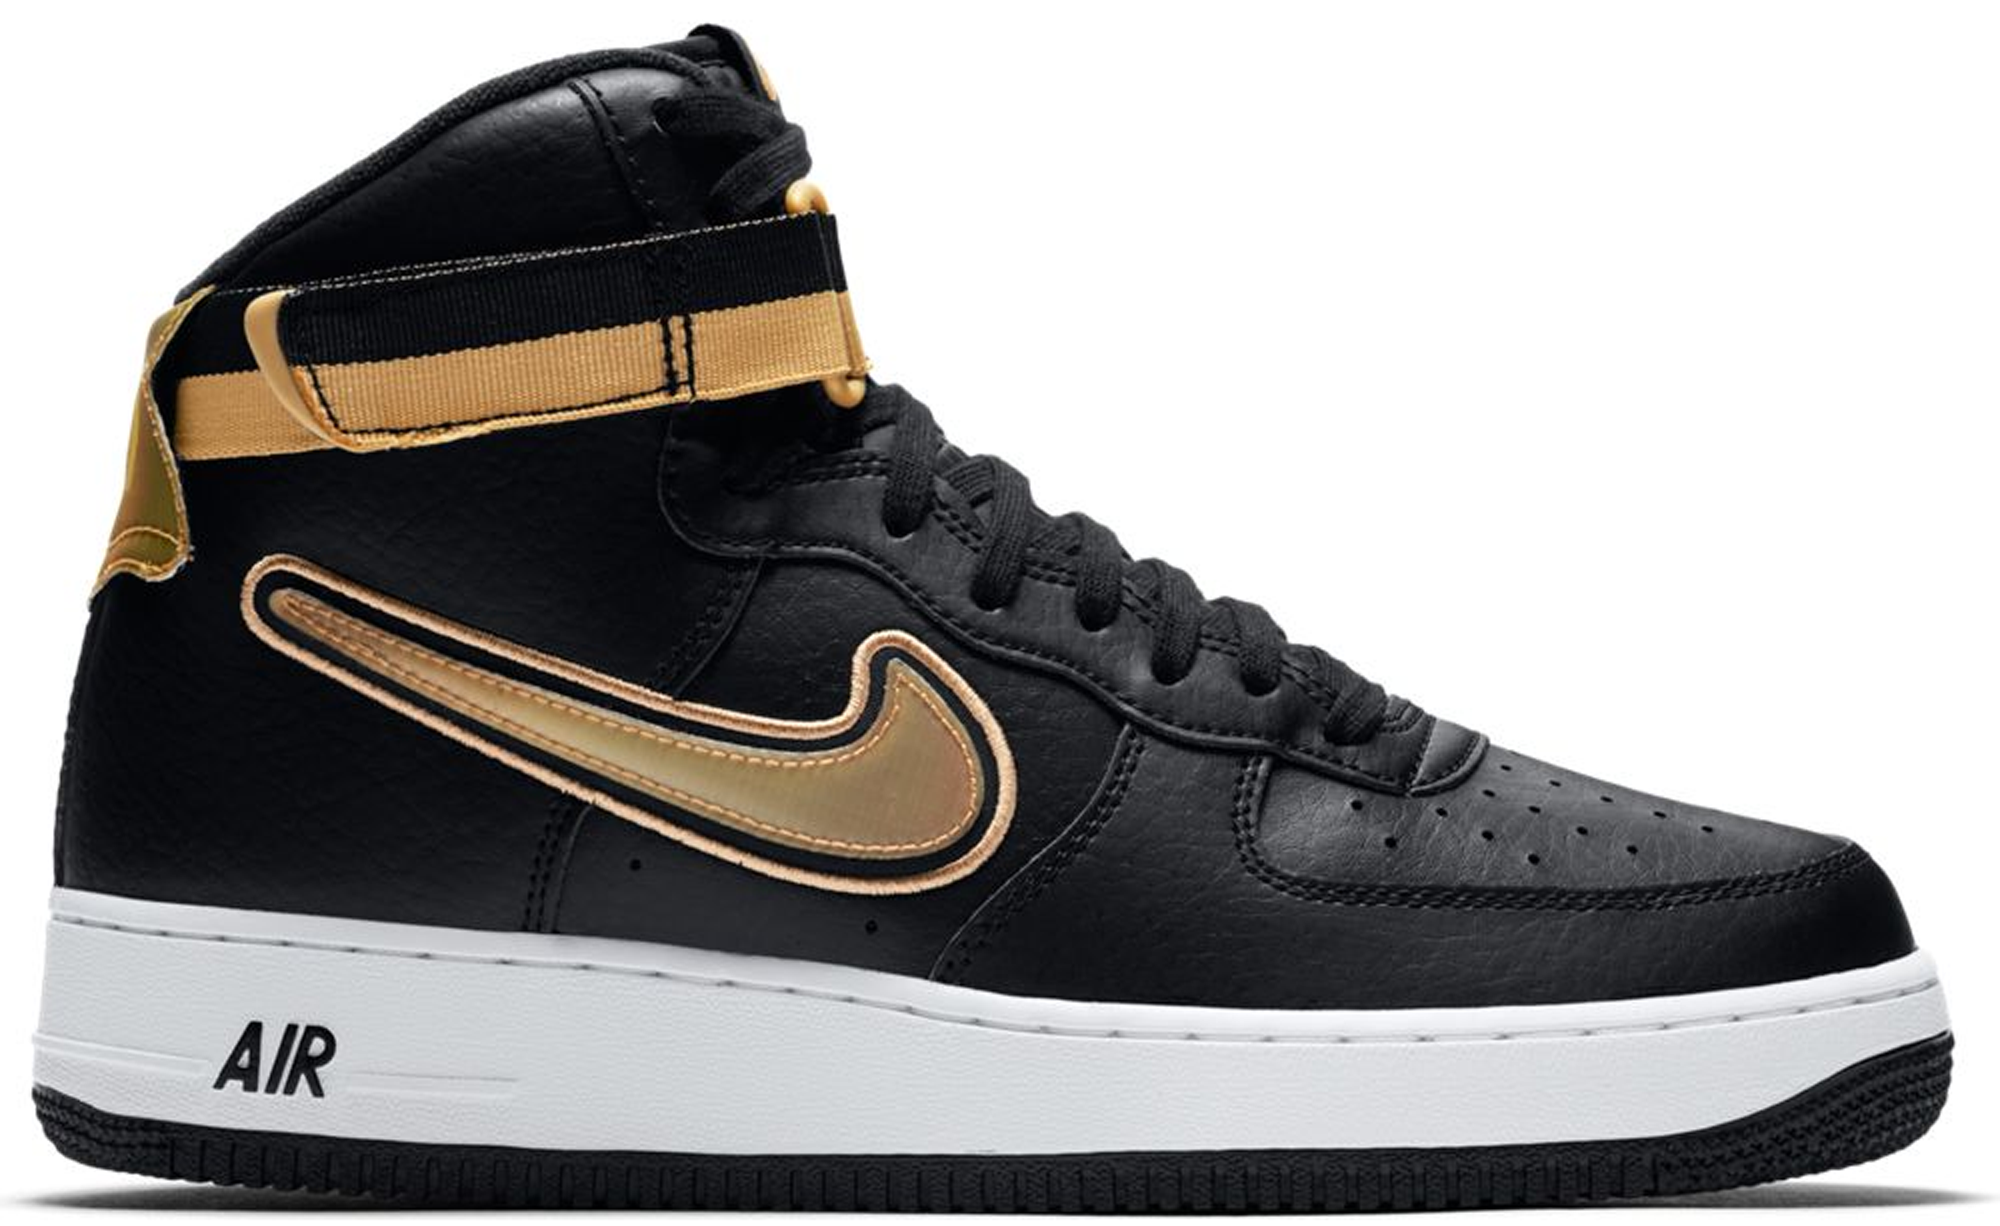 Air Force 1 High NBA Black Metallic Gold